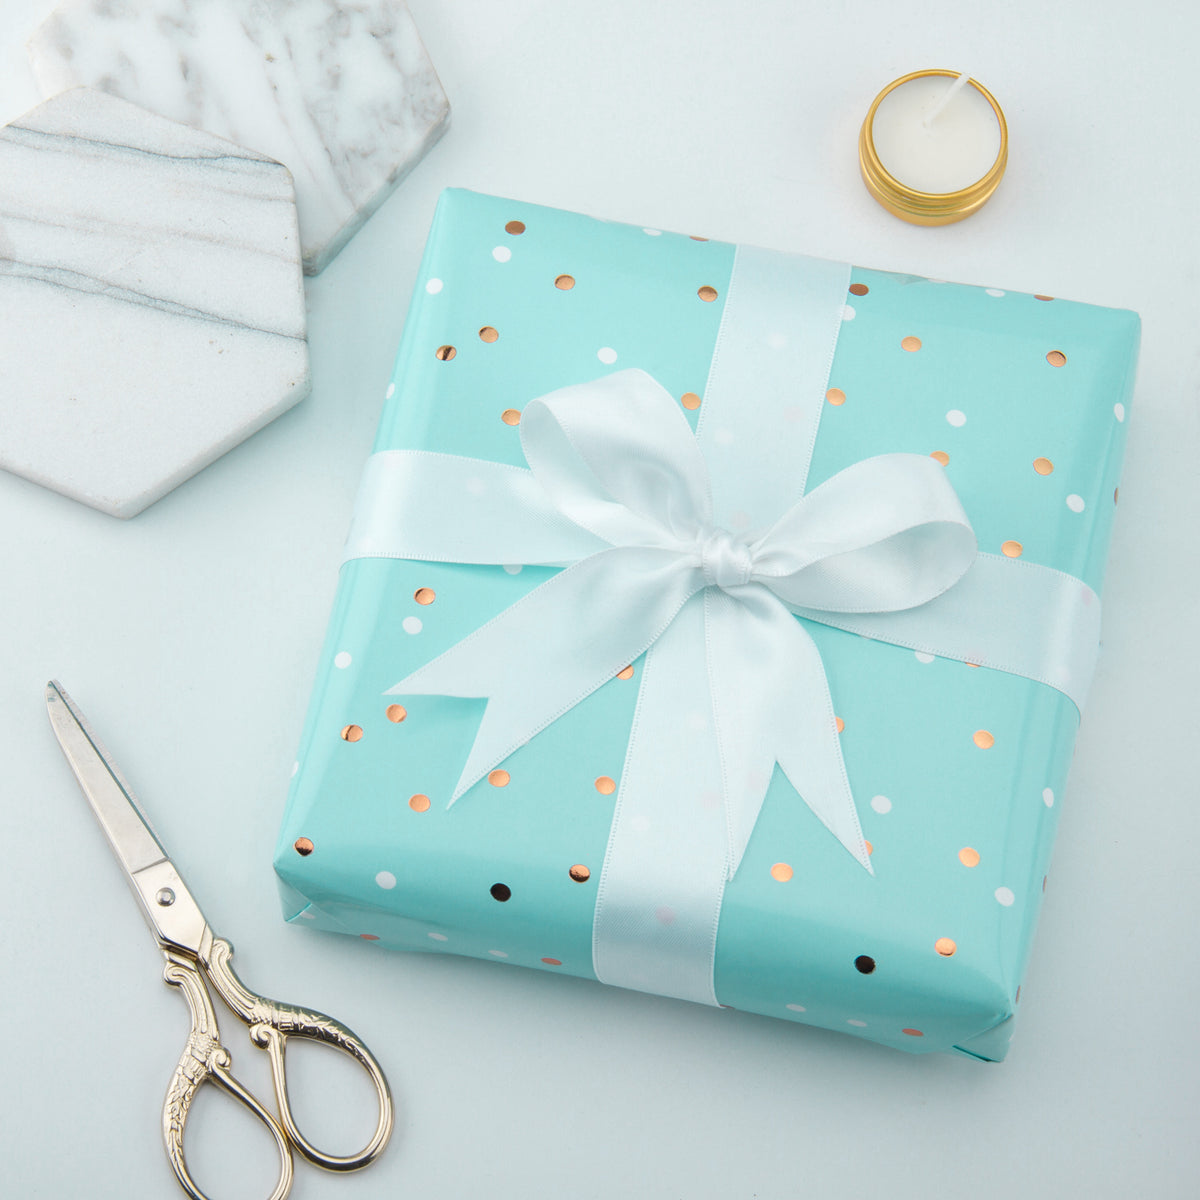 Wrapaholic-Mint-Color-with -Gold-Foil-Dots -Design-Gift-Wrapping- Paper-Roll-3